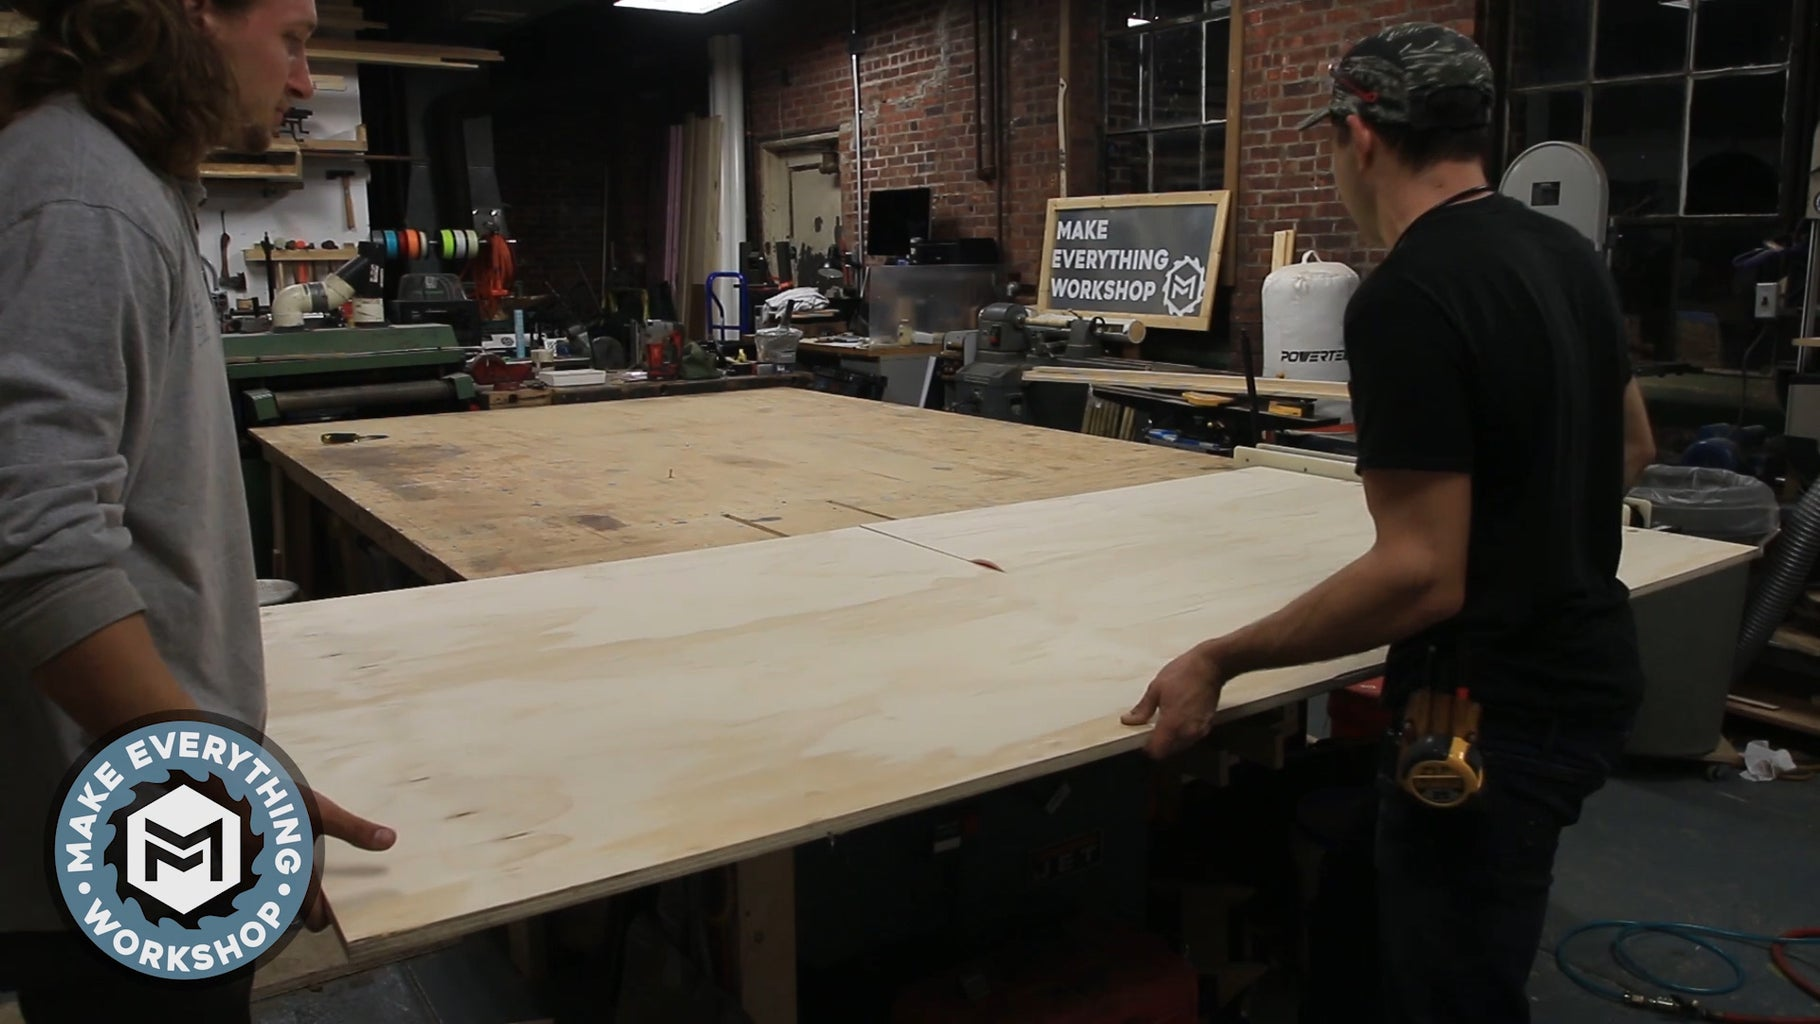 Cut Up the Material for the Table